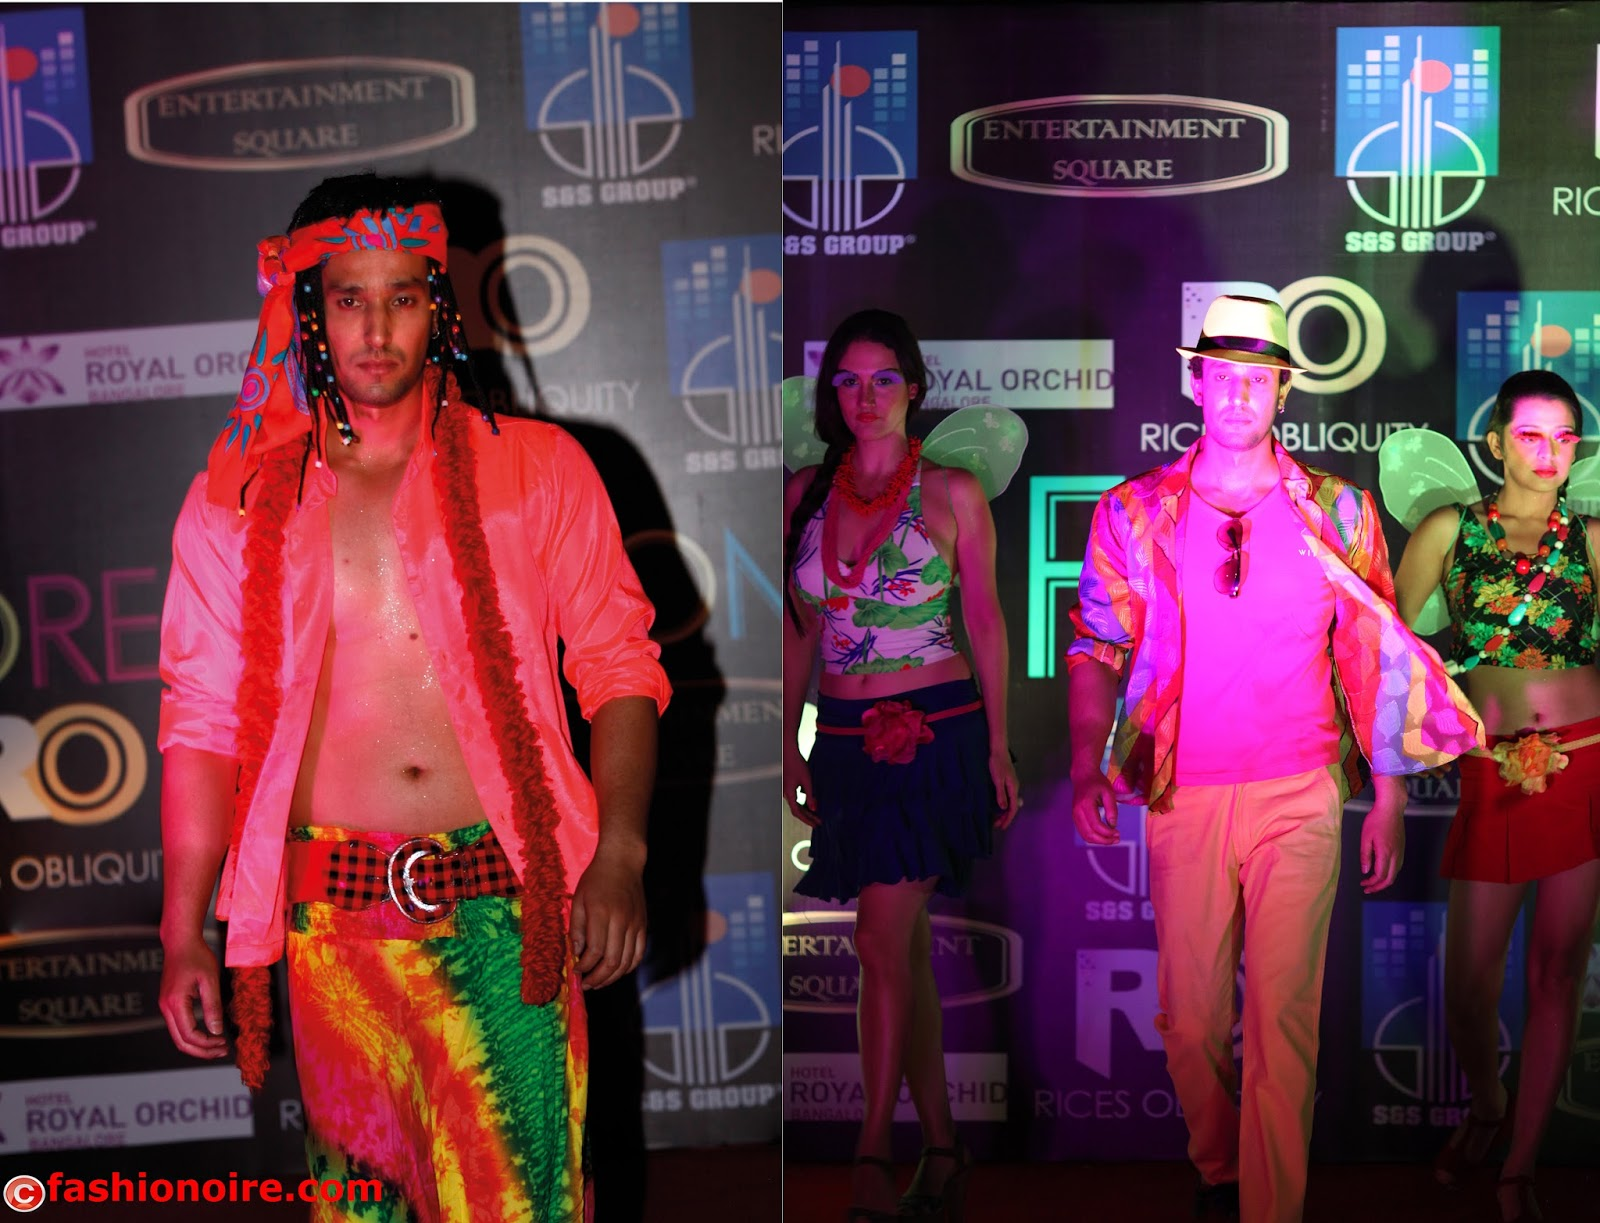 Fashion designer Rajesh shetty Show cased His Beach/Summer collection